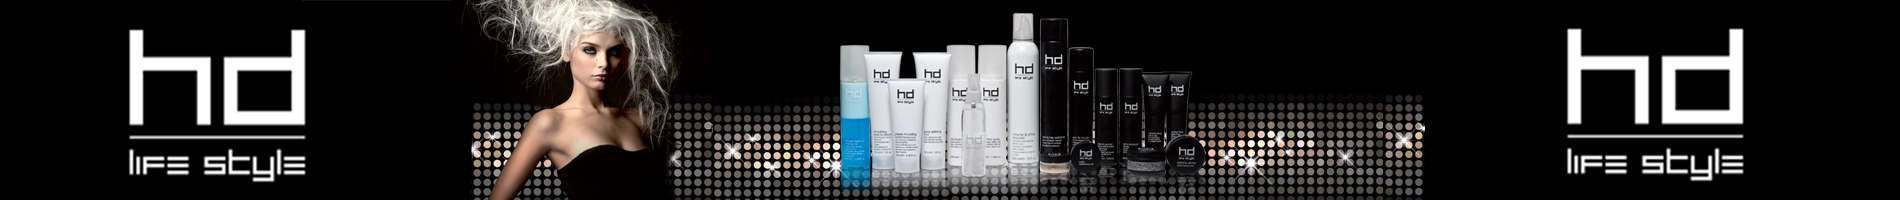 Hair Finishing Products